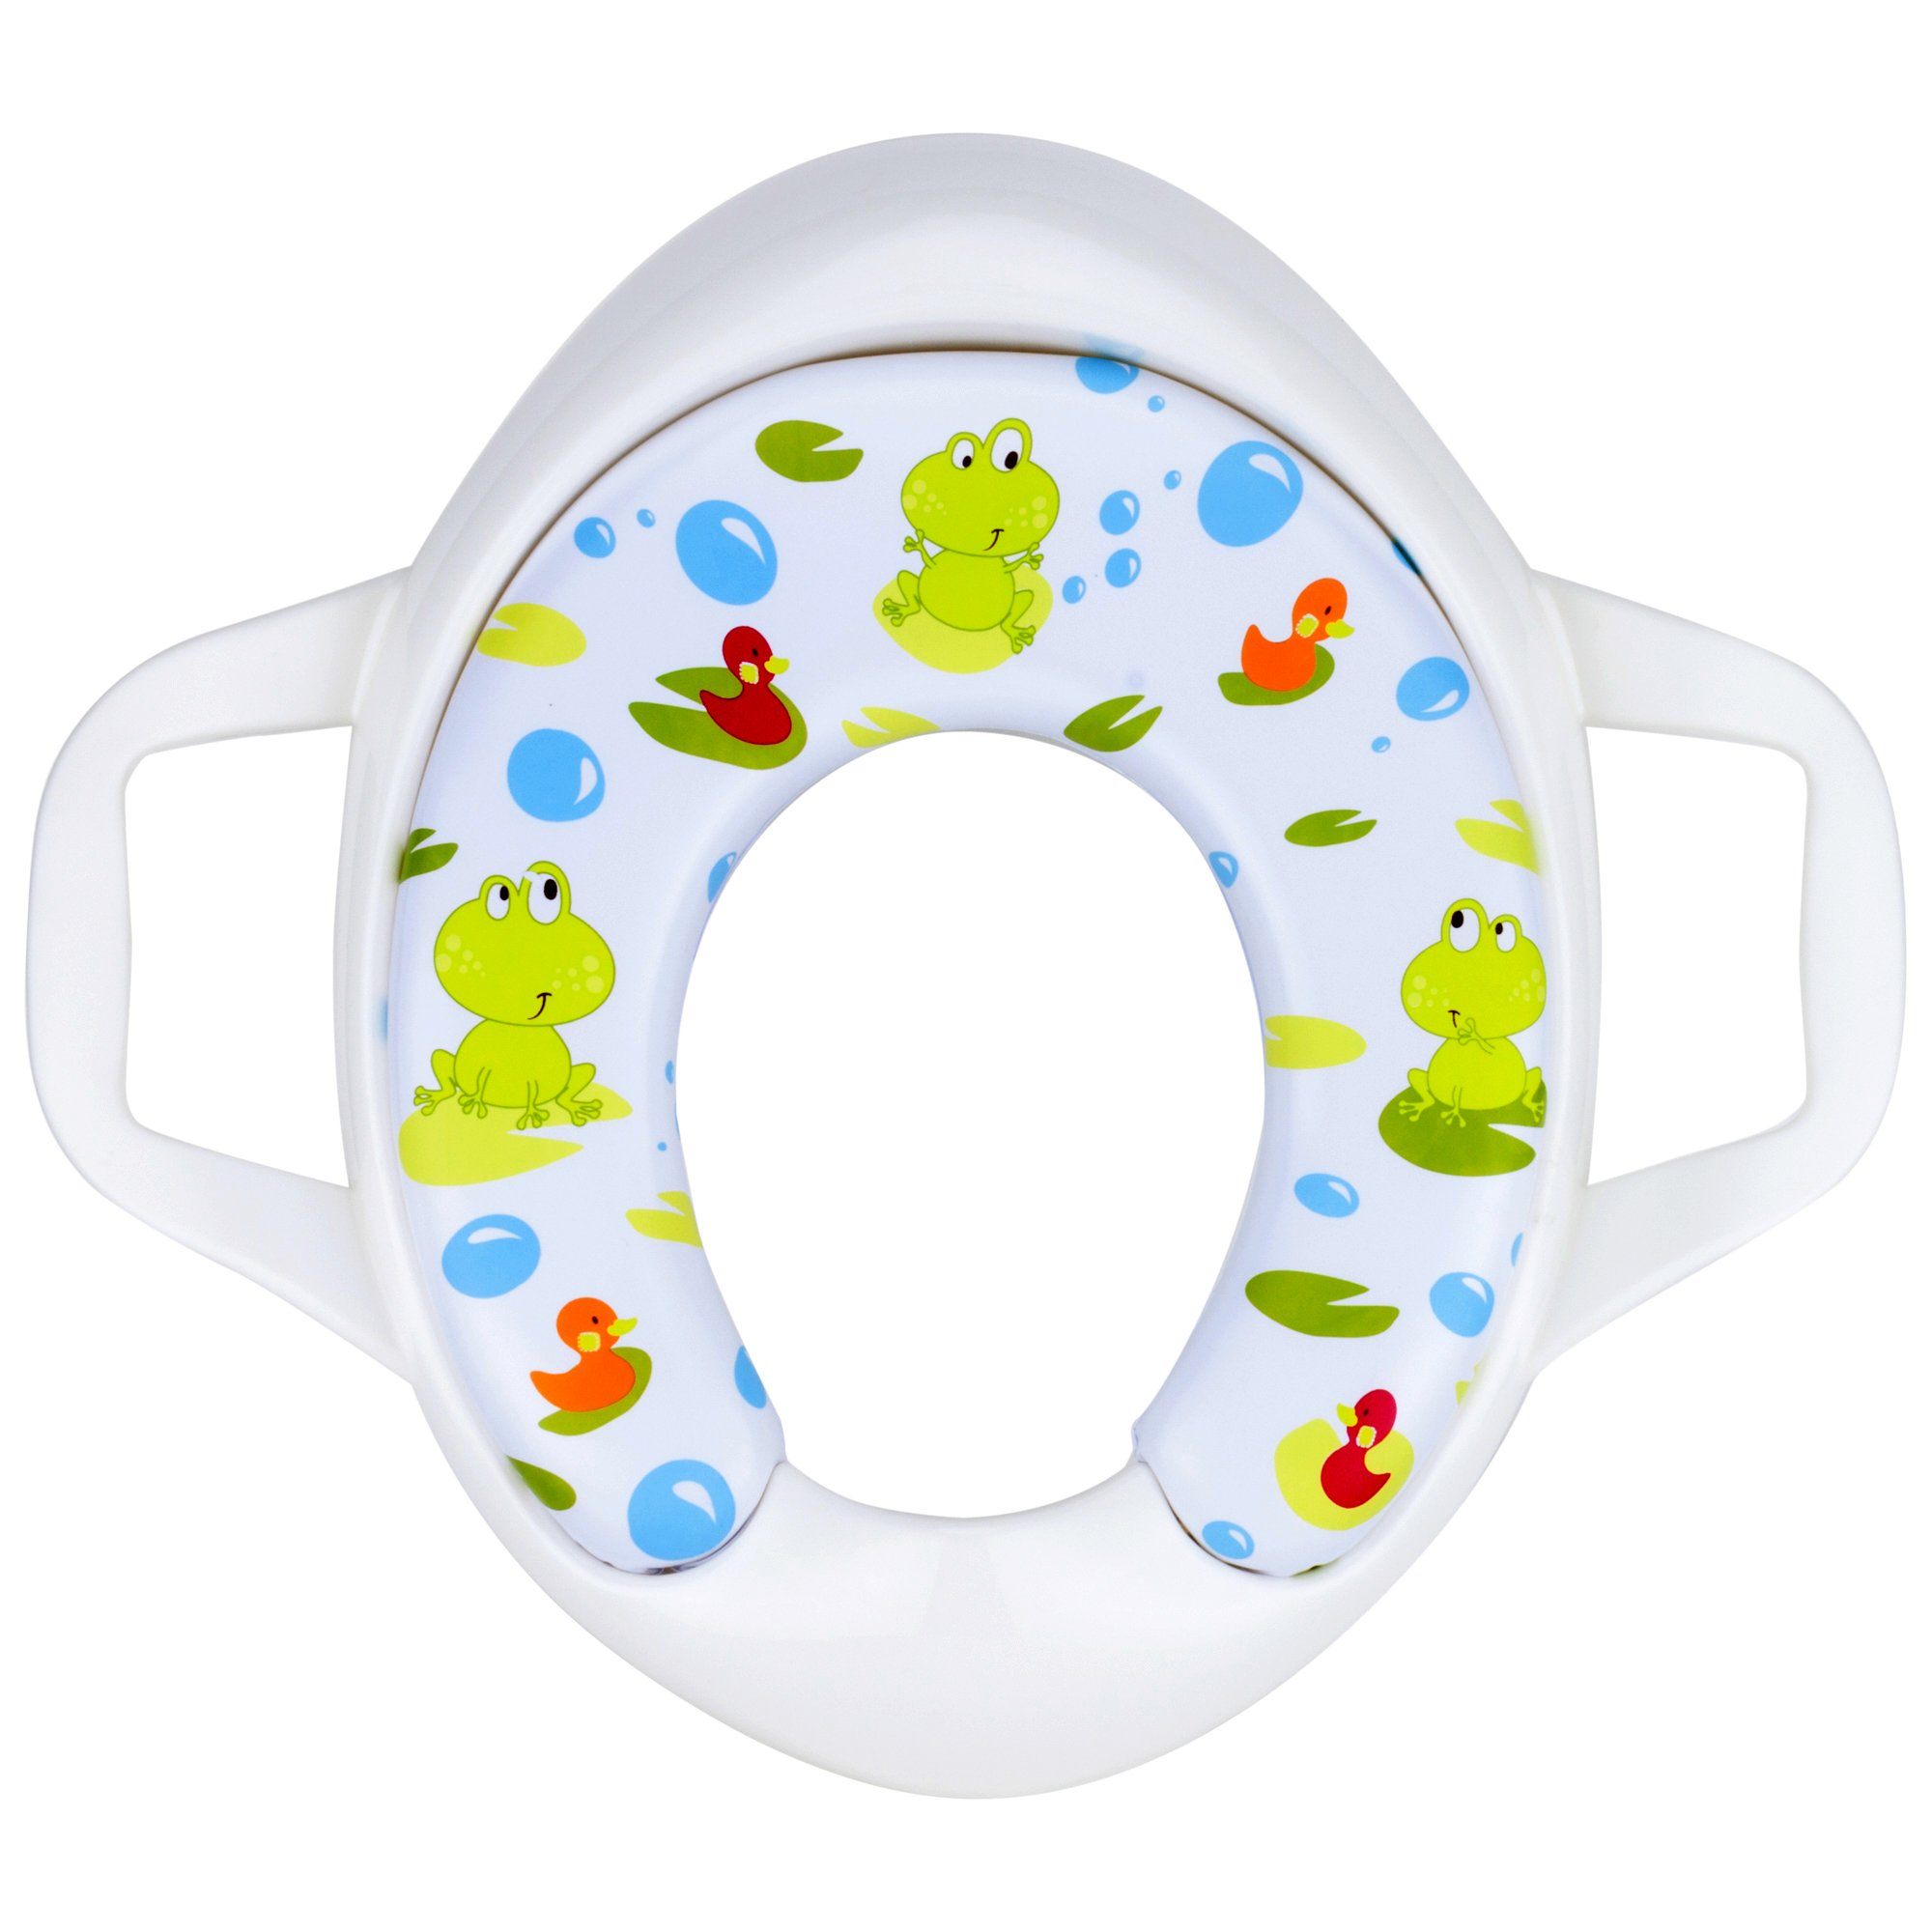 Potty Training Seat for Standard Size Toilet | Potty Seat for Toilet | Best Portable Potty Seat | Soft Toilet Ring | Ergonomic Handles | Cushion Potty Ring | Strong & Durable | For Girls and Boys | Toddler & Kid & Baby | Ideal For Travel |Free Ebook